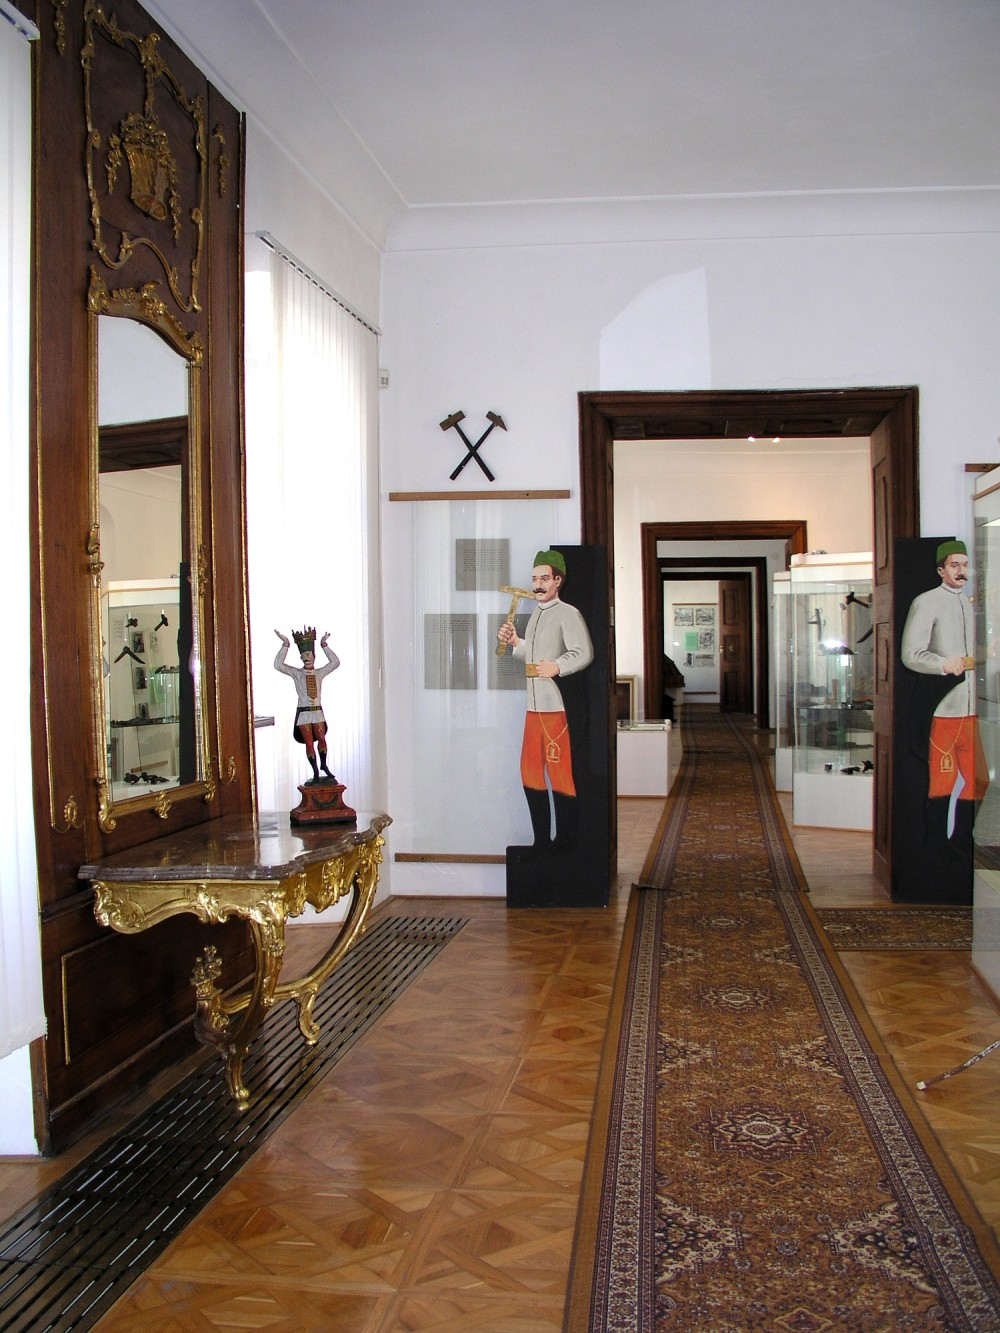 Inside the Kammerhof complex you'll still find figures of Ausus miners at the door. – © Lubo Luzina